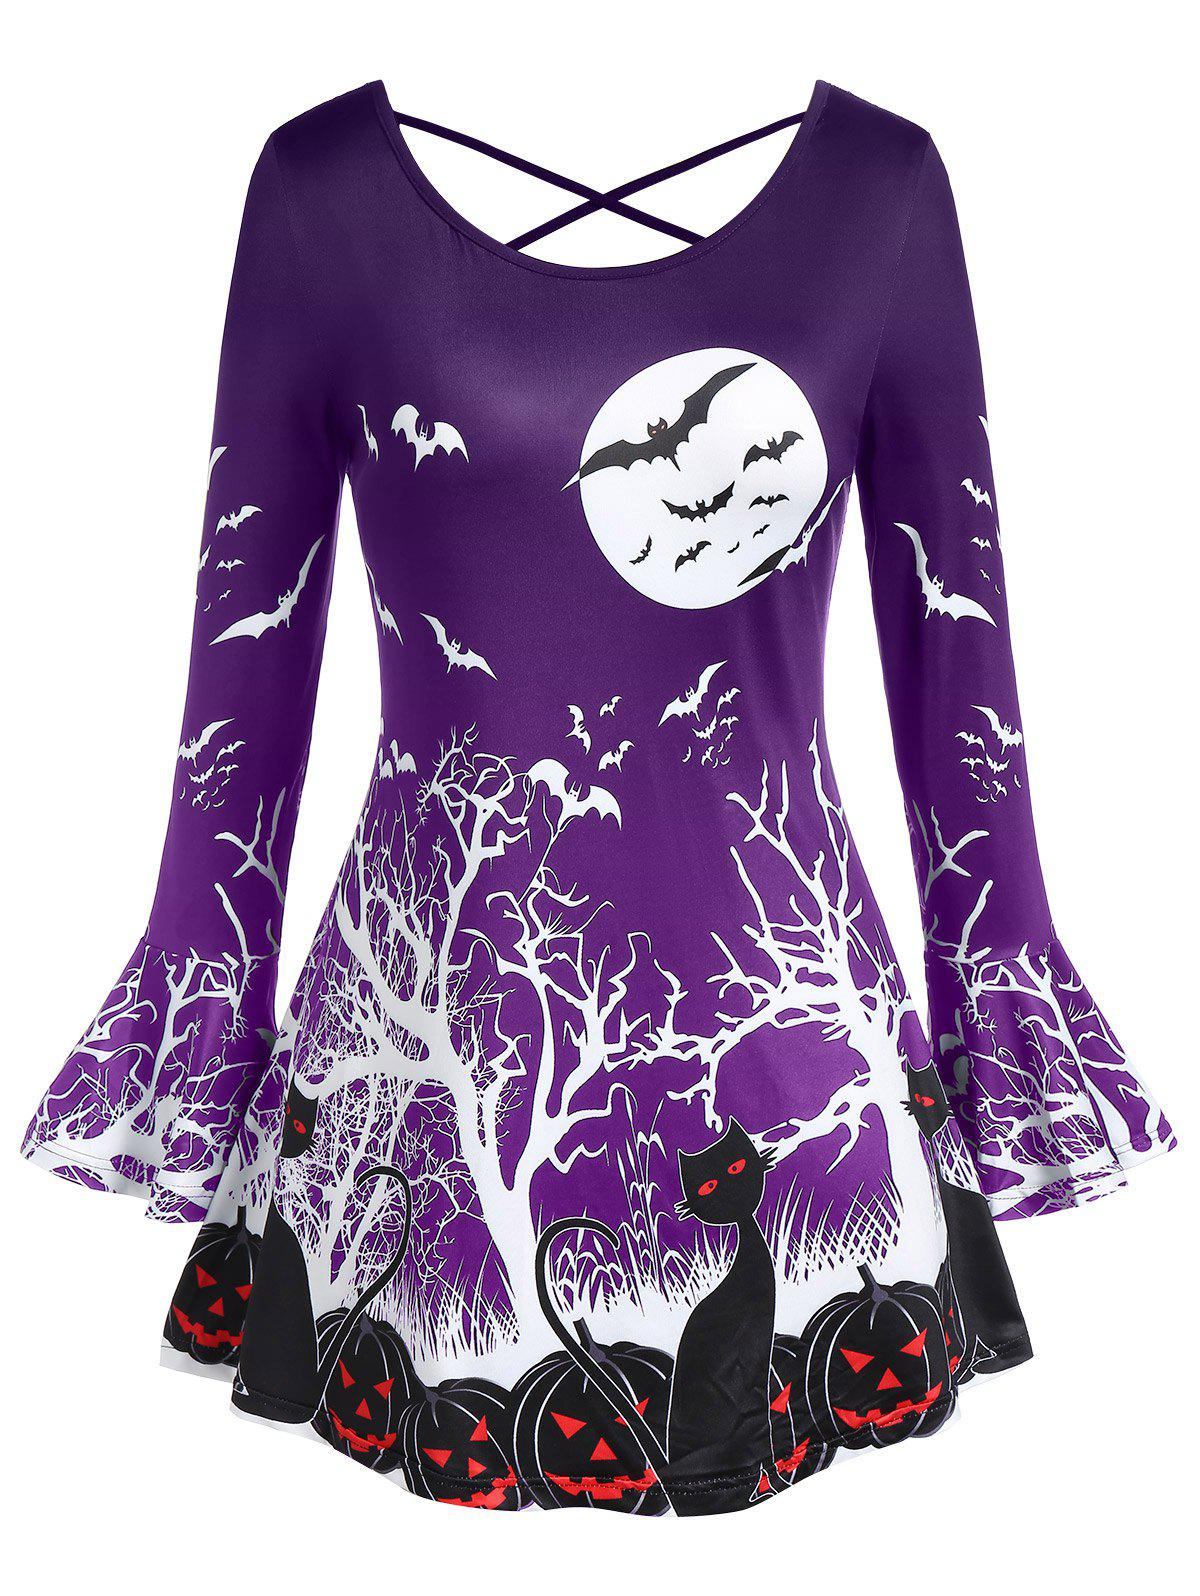 Plus Size Round Collar Punpkin Print Flare Halloween T Shirt - PURPLE IRIS 5X